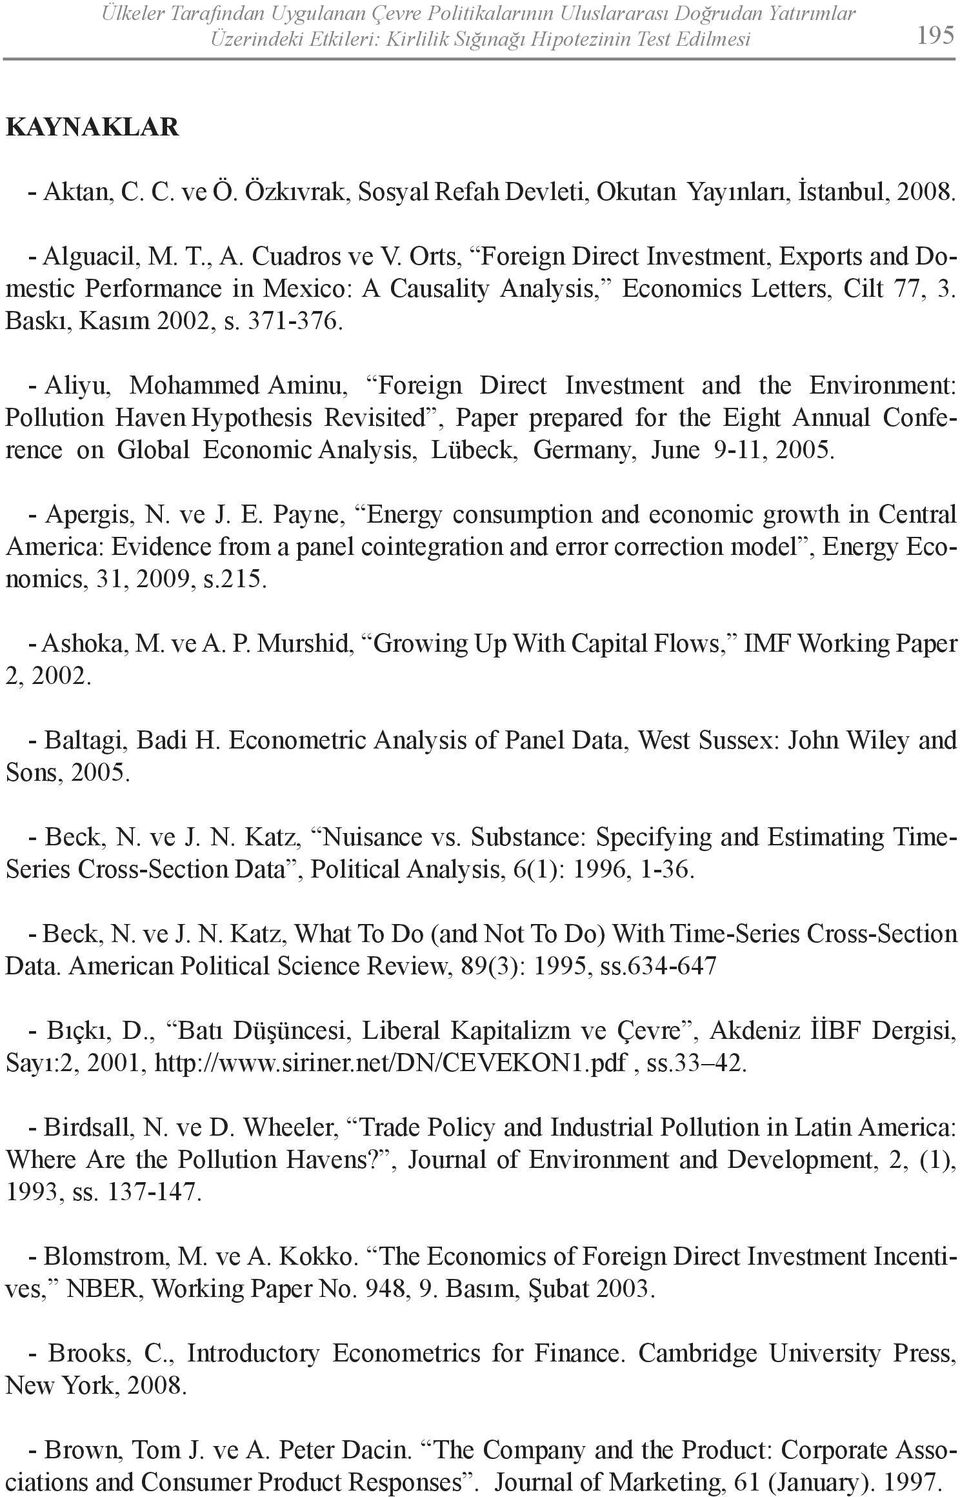 Orts, Foreign Direct Investment, Exports and Domestic Performance in Mexico: A Causality Analysis, Economics Letters, Cilt 77, 3. Baskı, Kasım 2002, s. 371-376.